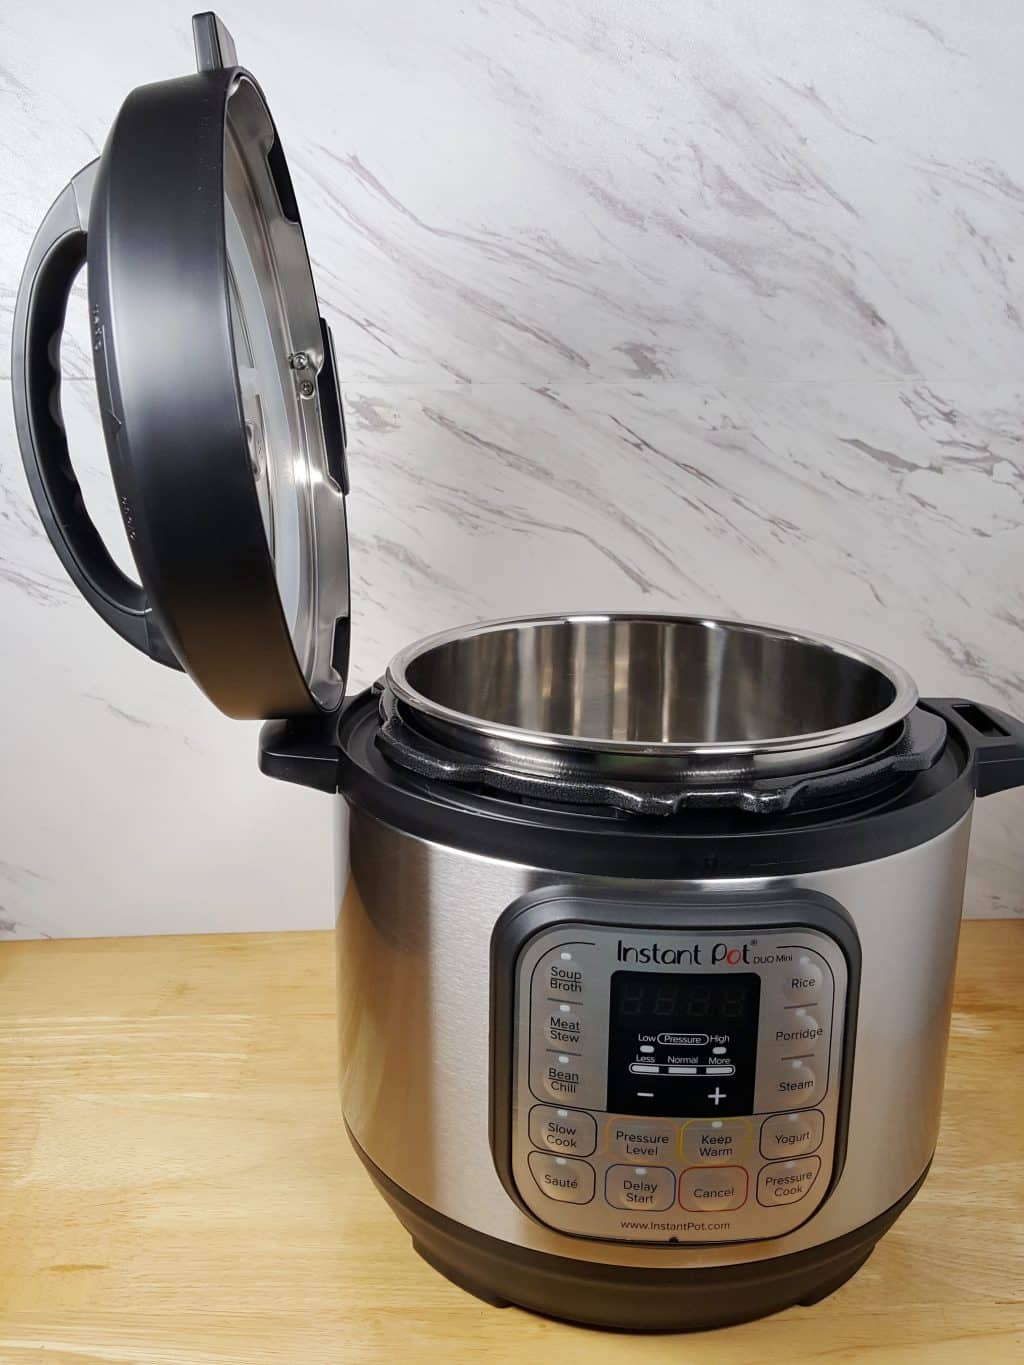 Instant Pot Duo Mini 7-in-1 Lid Holder